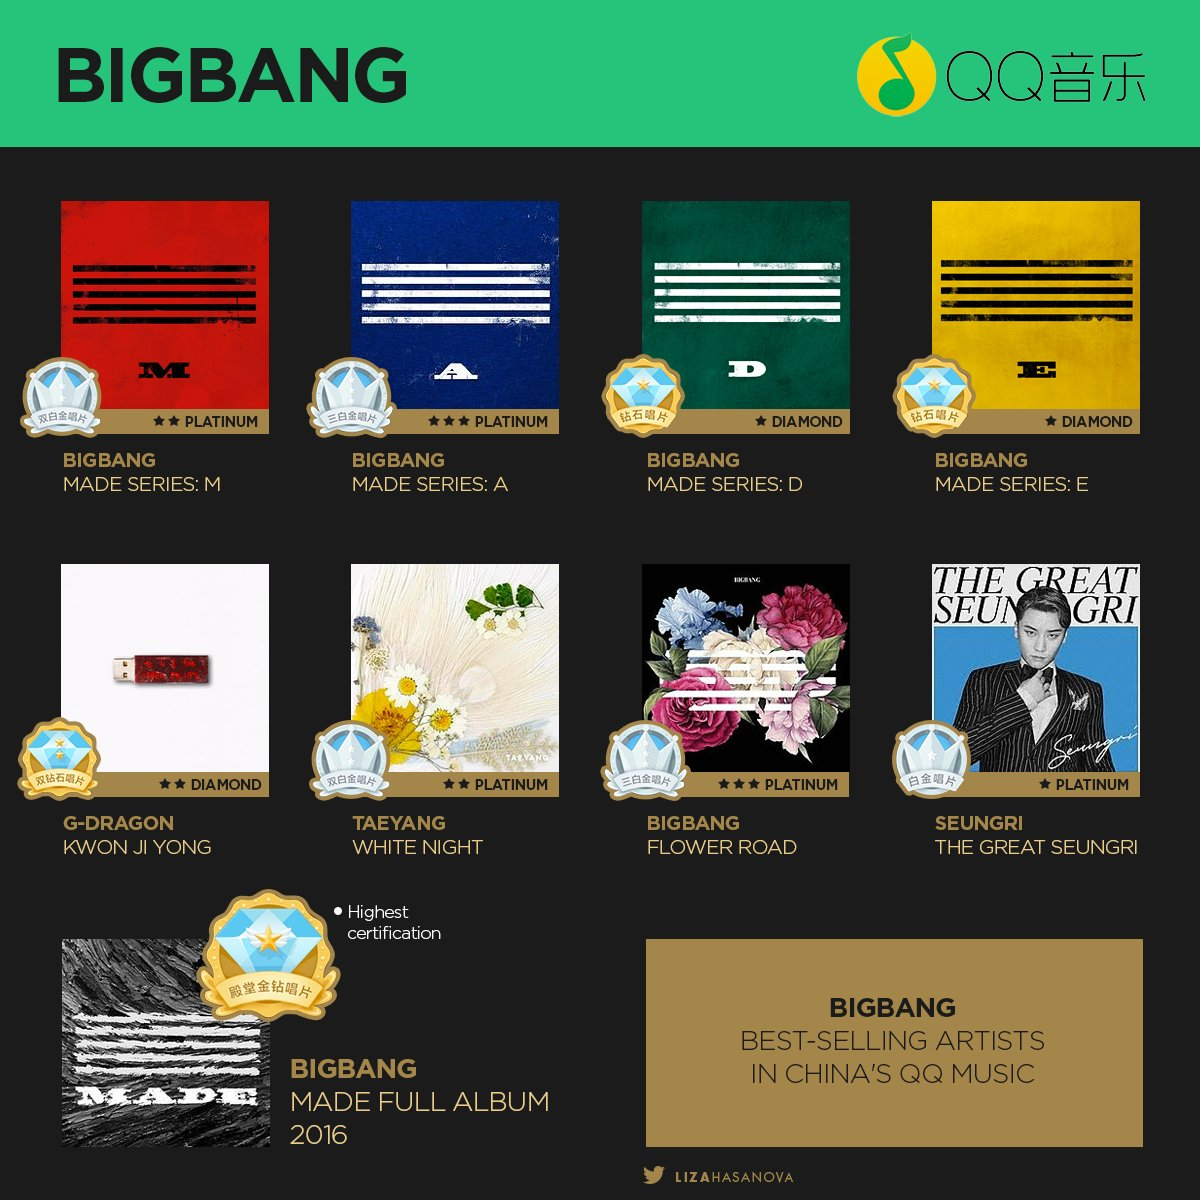 BIGBANG certifications in China's QQ Music - Charts and Sales